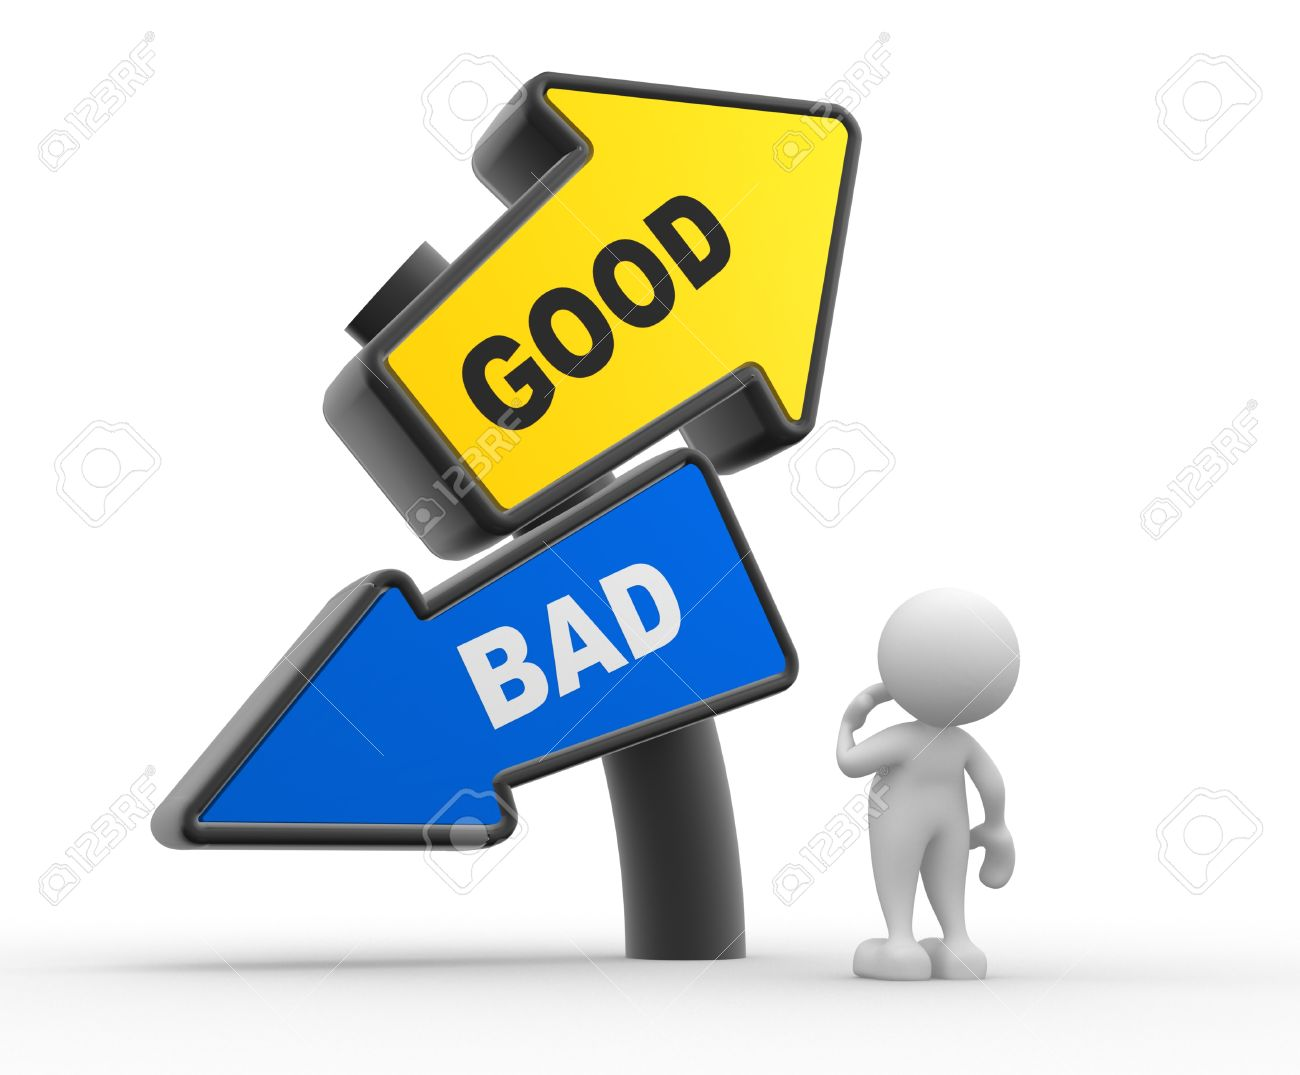 3d people - man, people standing in front of a road sign. Confusion - good or bad Stock Photo - 17187631